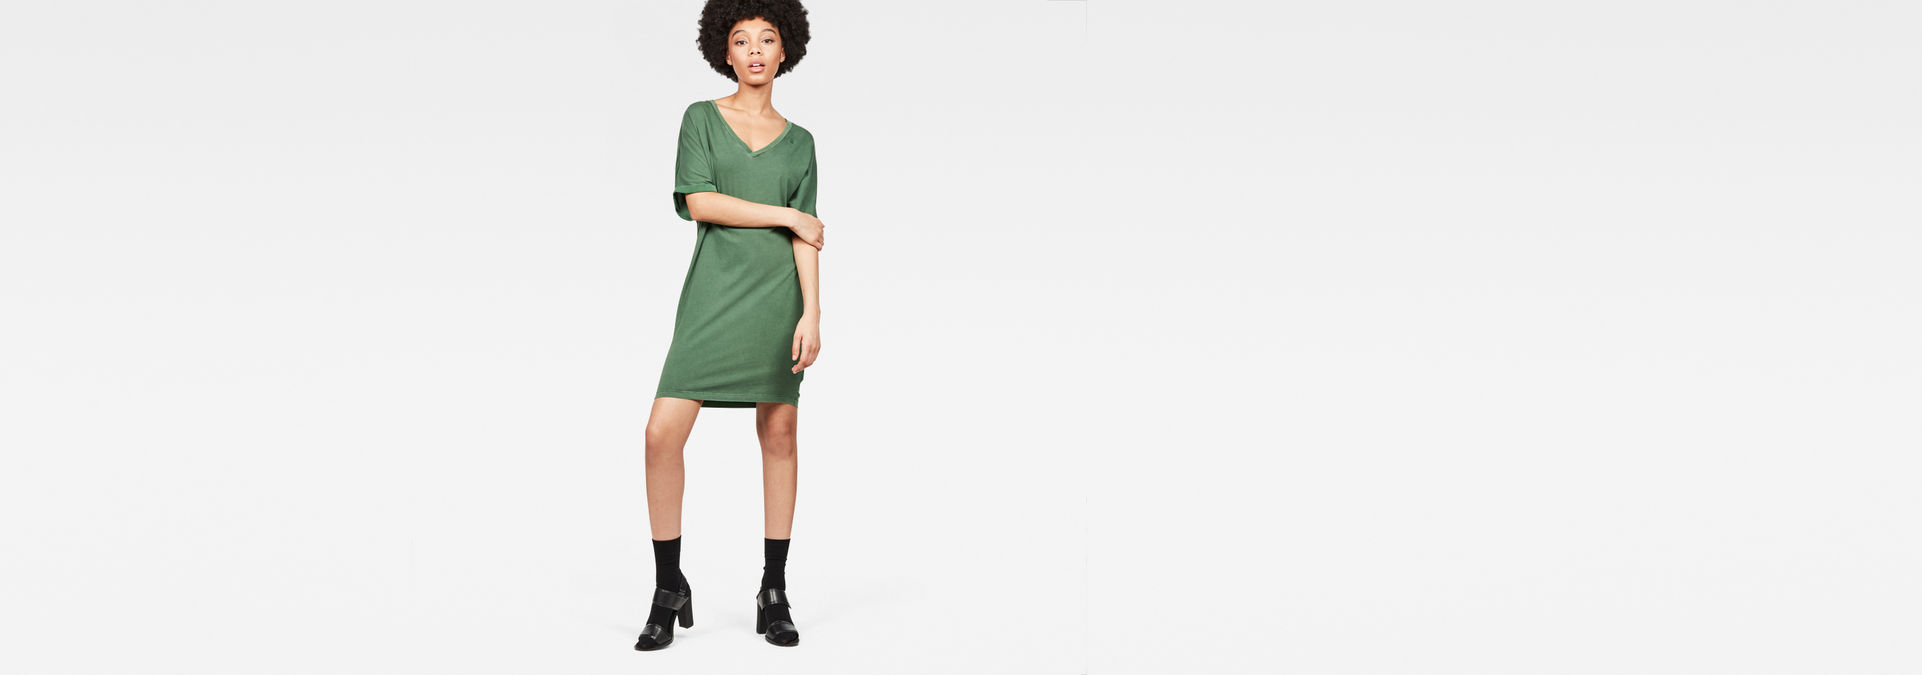 Joosa V Neck Dress by G Star